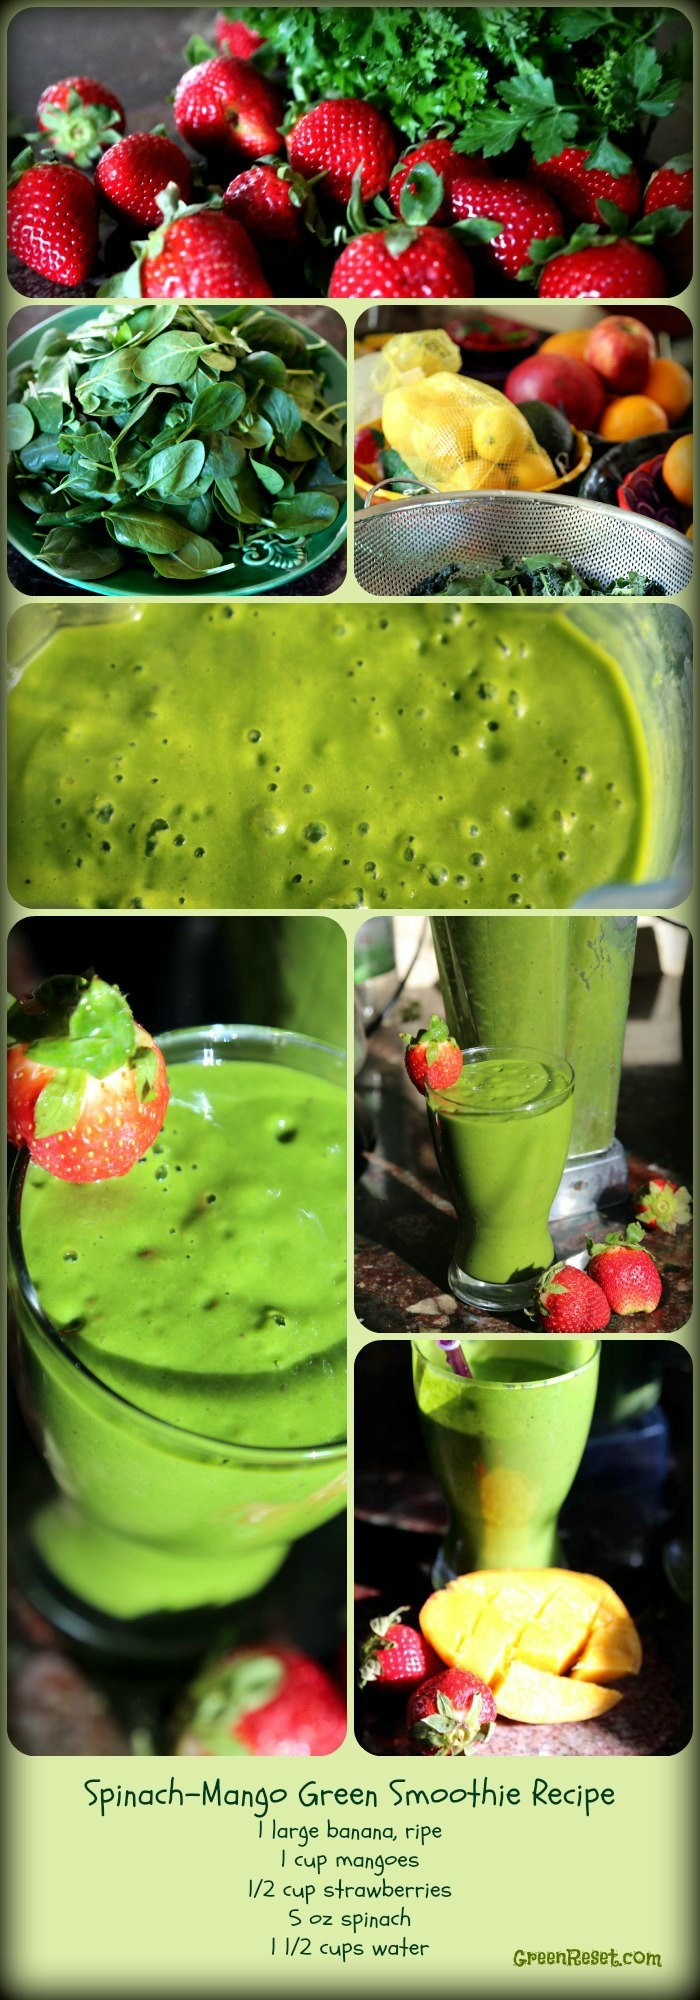 Healthy Fruit Smoothie Recipes  9 Breakfast Smoothies Plus 3 More Super Healthy Breakfast